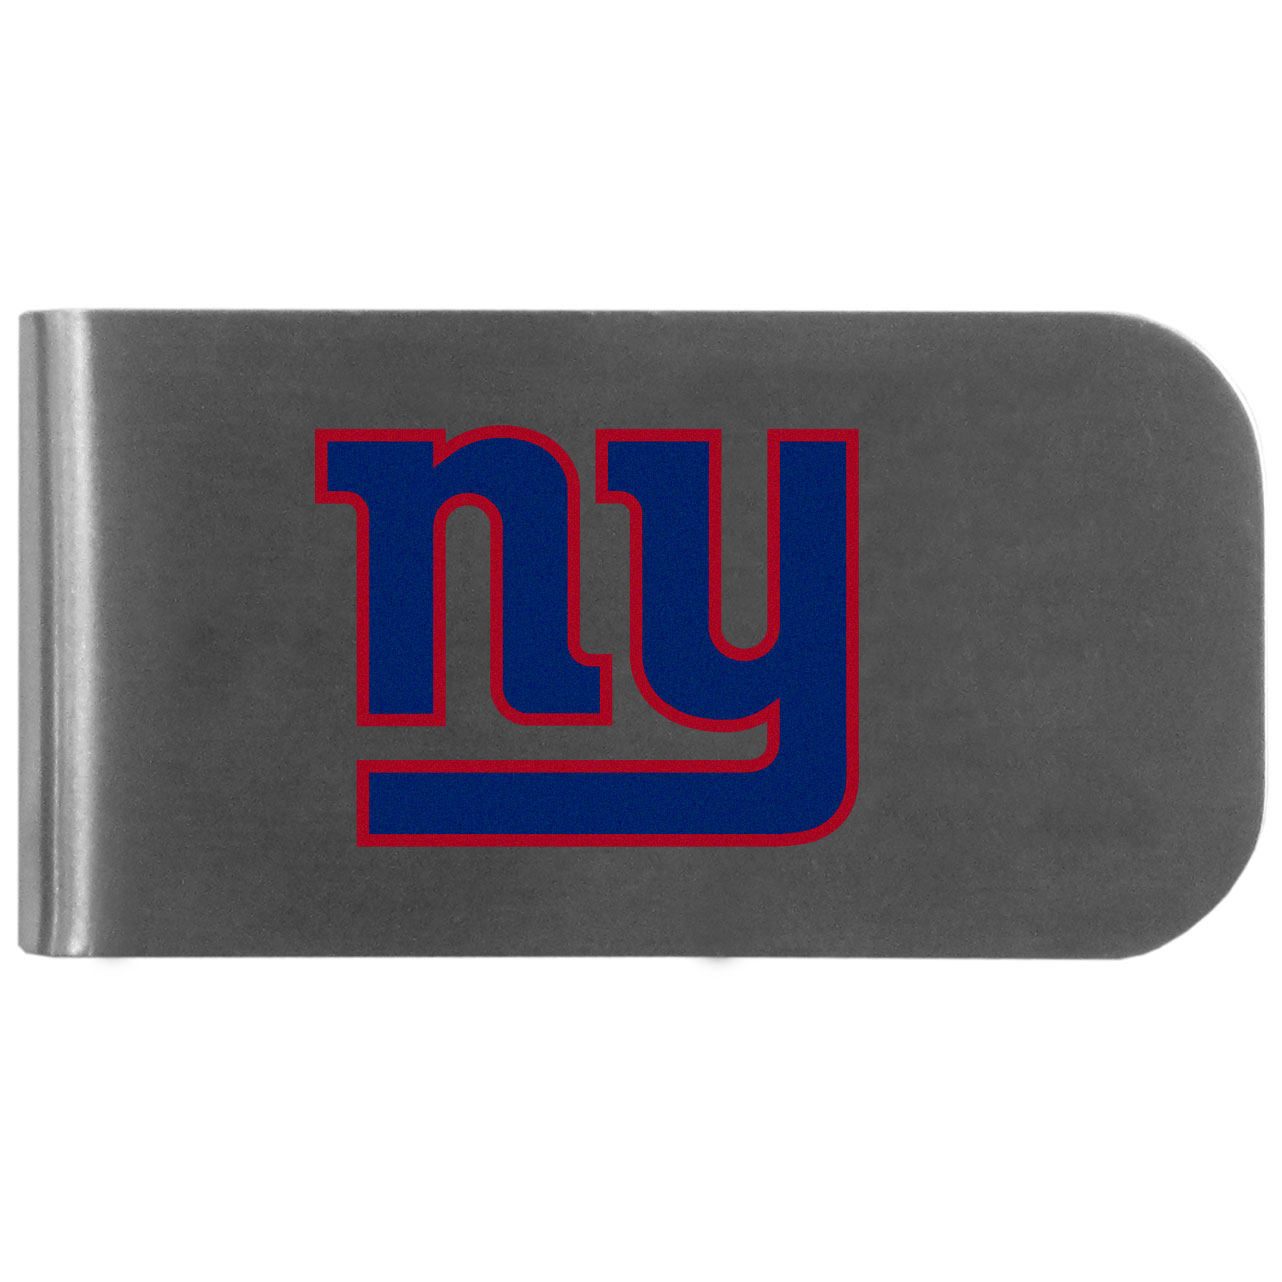 New York Giants Logo Bottle Opener Money Clip - This unique money clip features a classic, brushed-metal finish with a handy bottle opener feature on the back. The clip has the New York Giants logo expertly printed on the front of the clip.